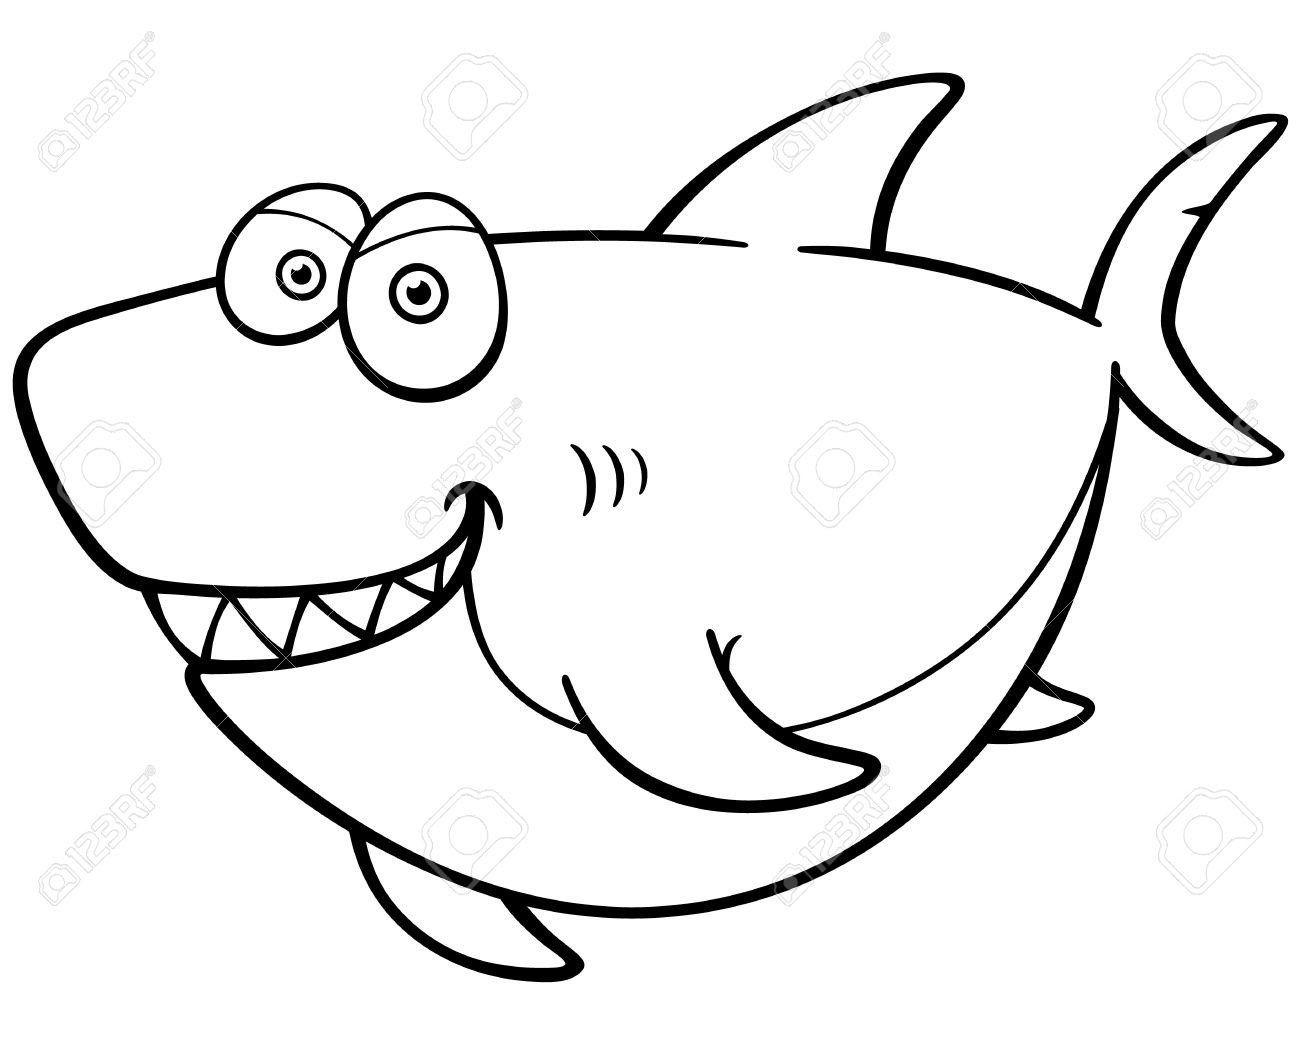 Coloring pages kids: Coloring Sheet Baby Shark Printables